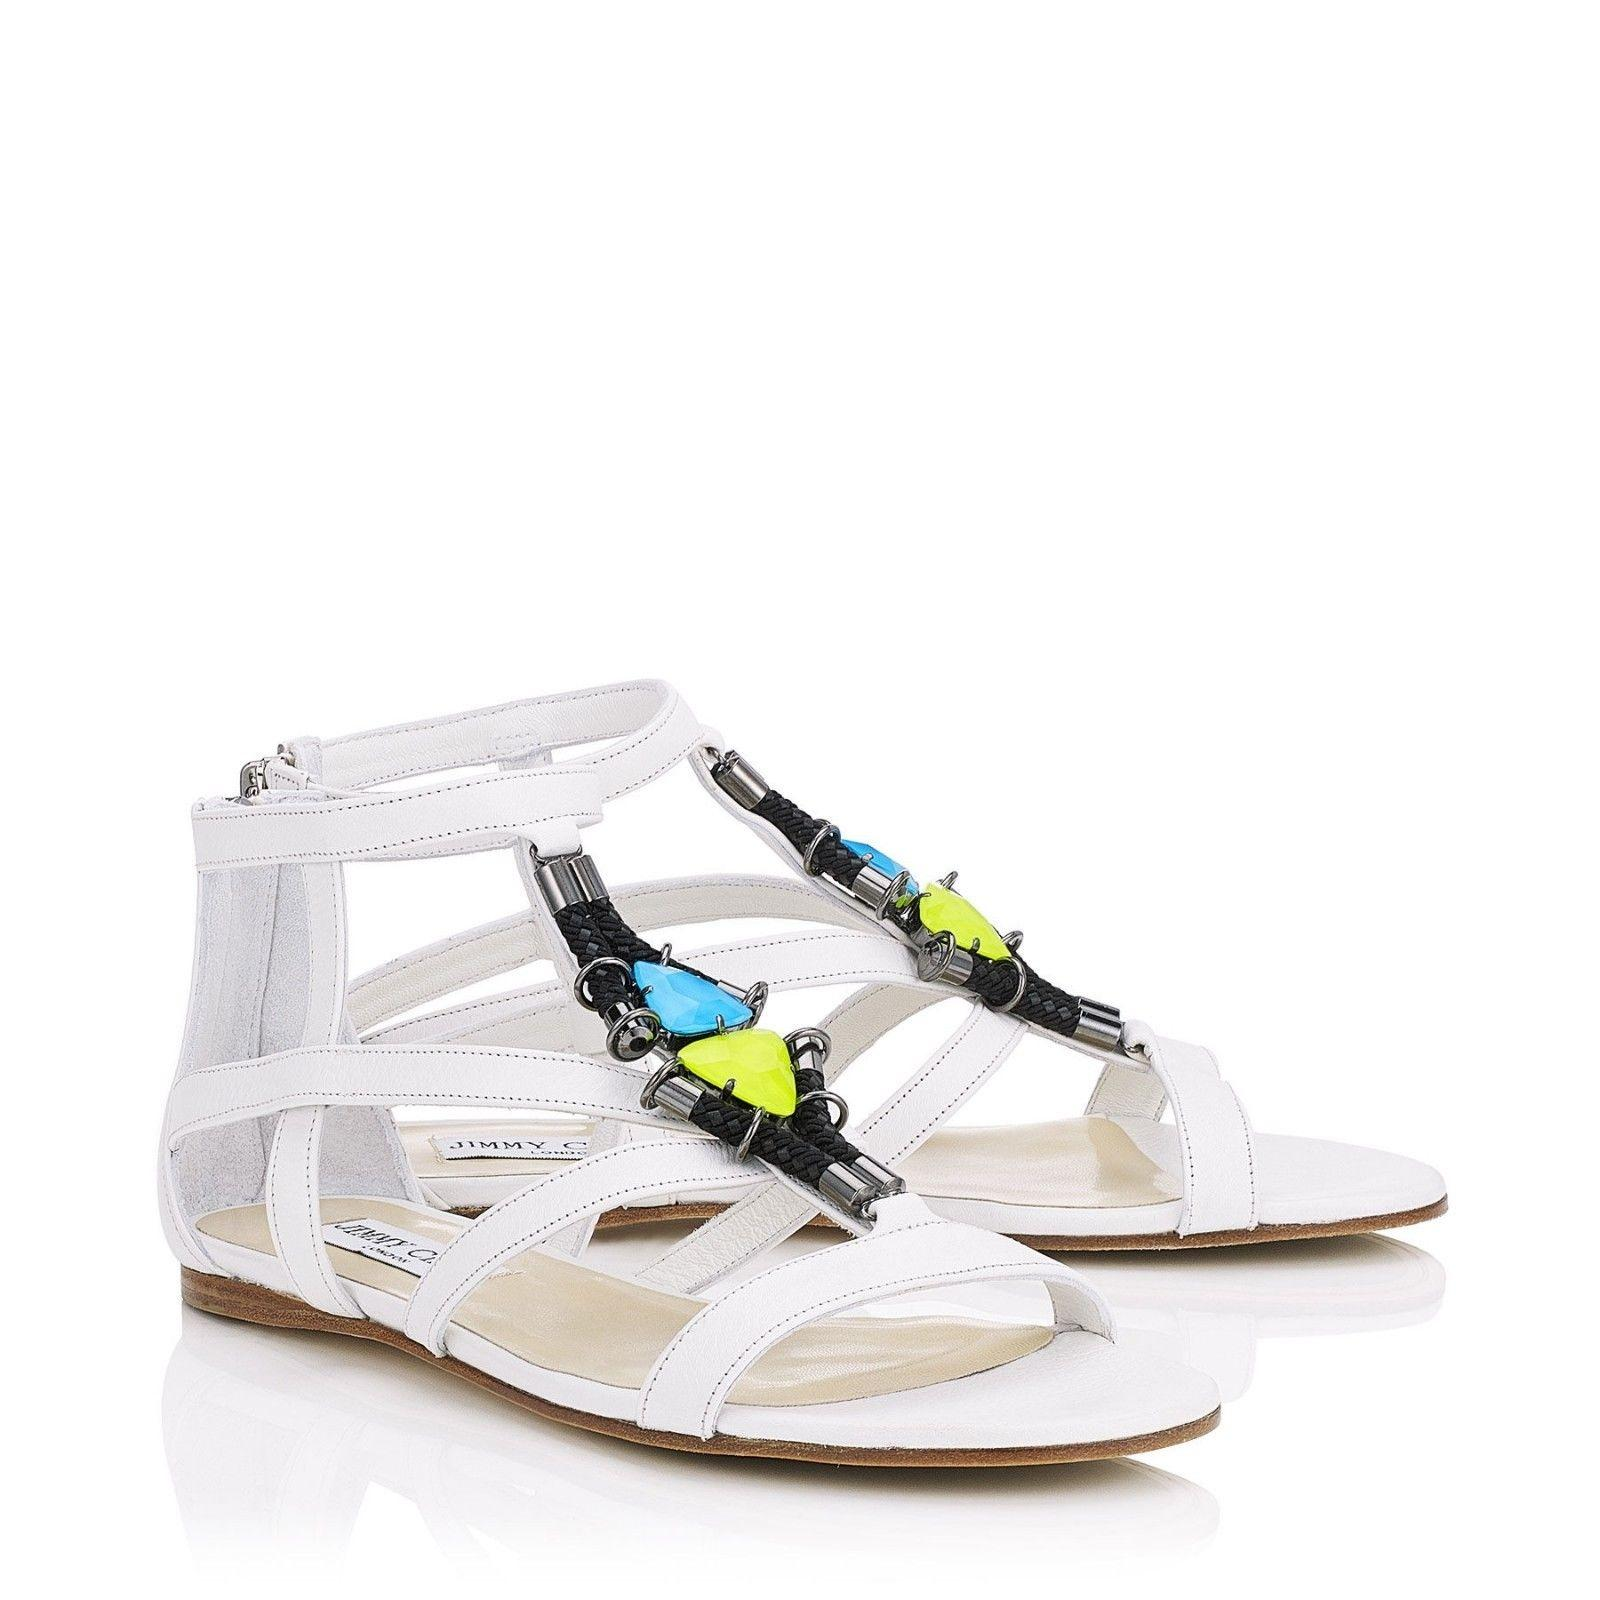 Jimmy Choo White Nano Optic Jeweled Cage Flats Gladiators Sandals Size EU 40 (Approx. US 10) Regular (M, B)